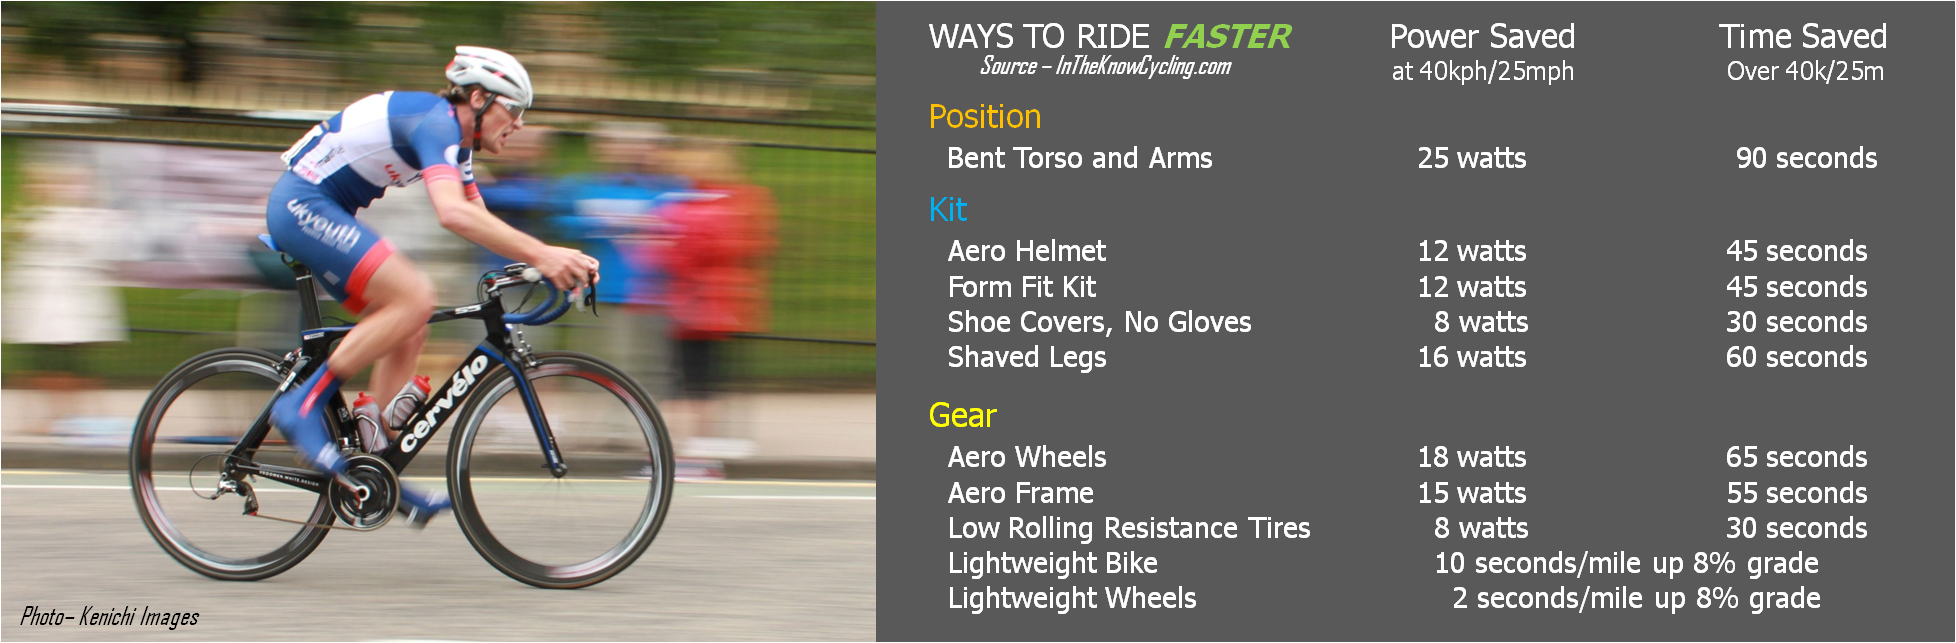 How To Ride Faster On Your Bike 10 Better Ways Gear And Kit